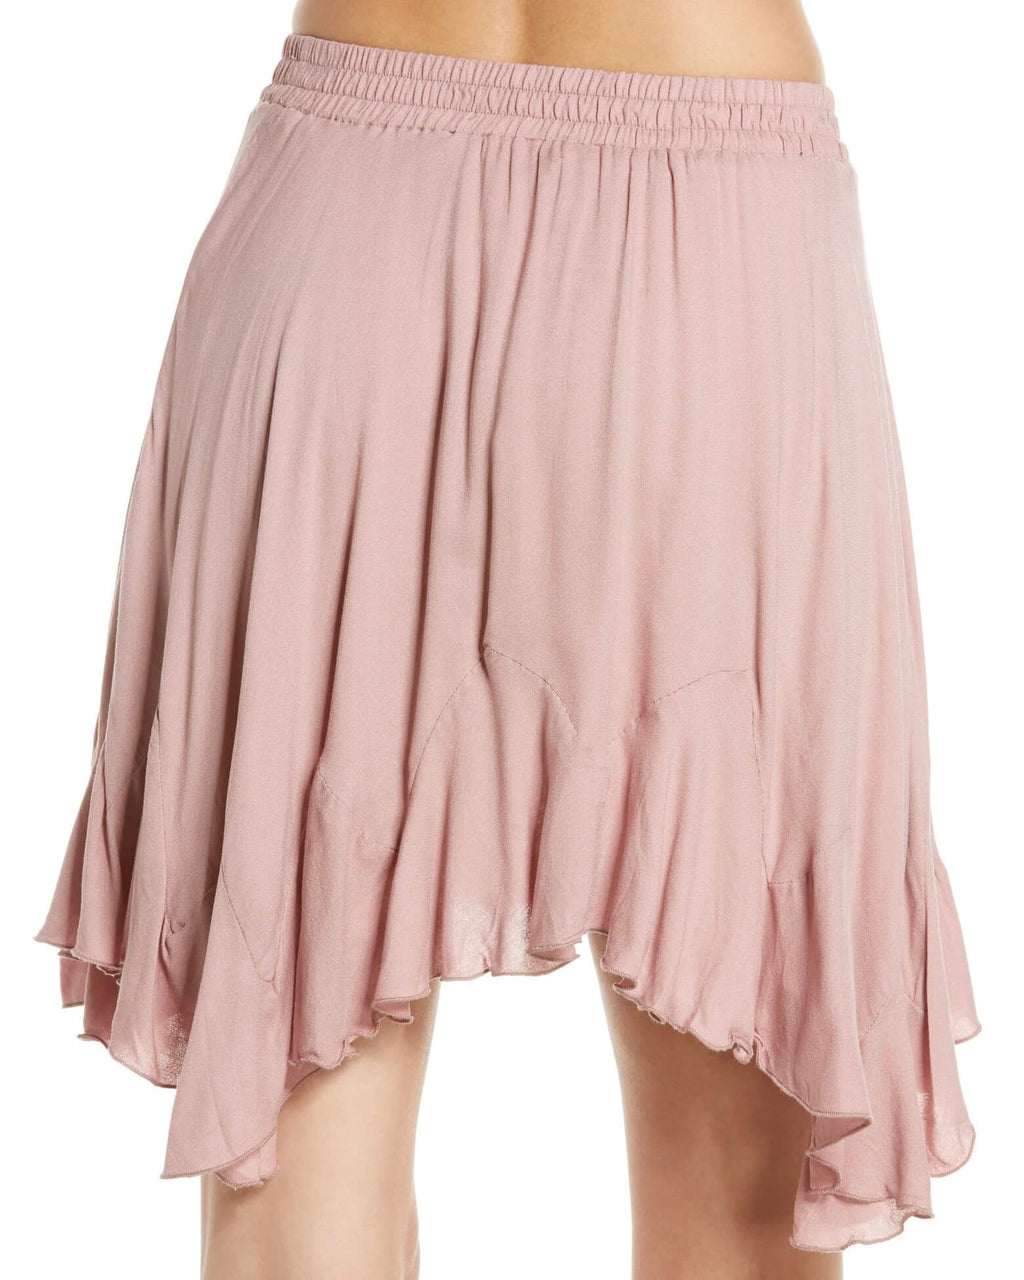 3d8f96b0cd2d Free People - Easy Does It Half Slip Pull-On Skirt - Pink